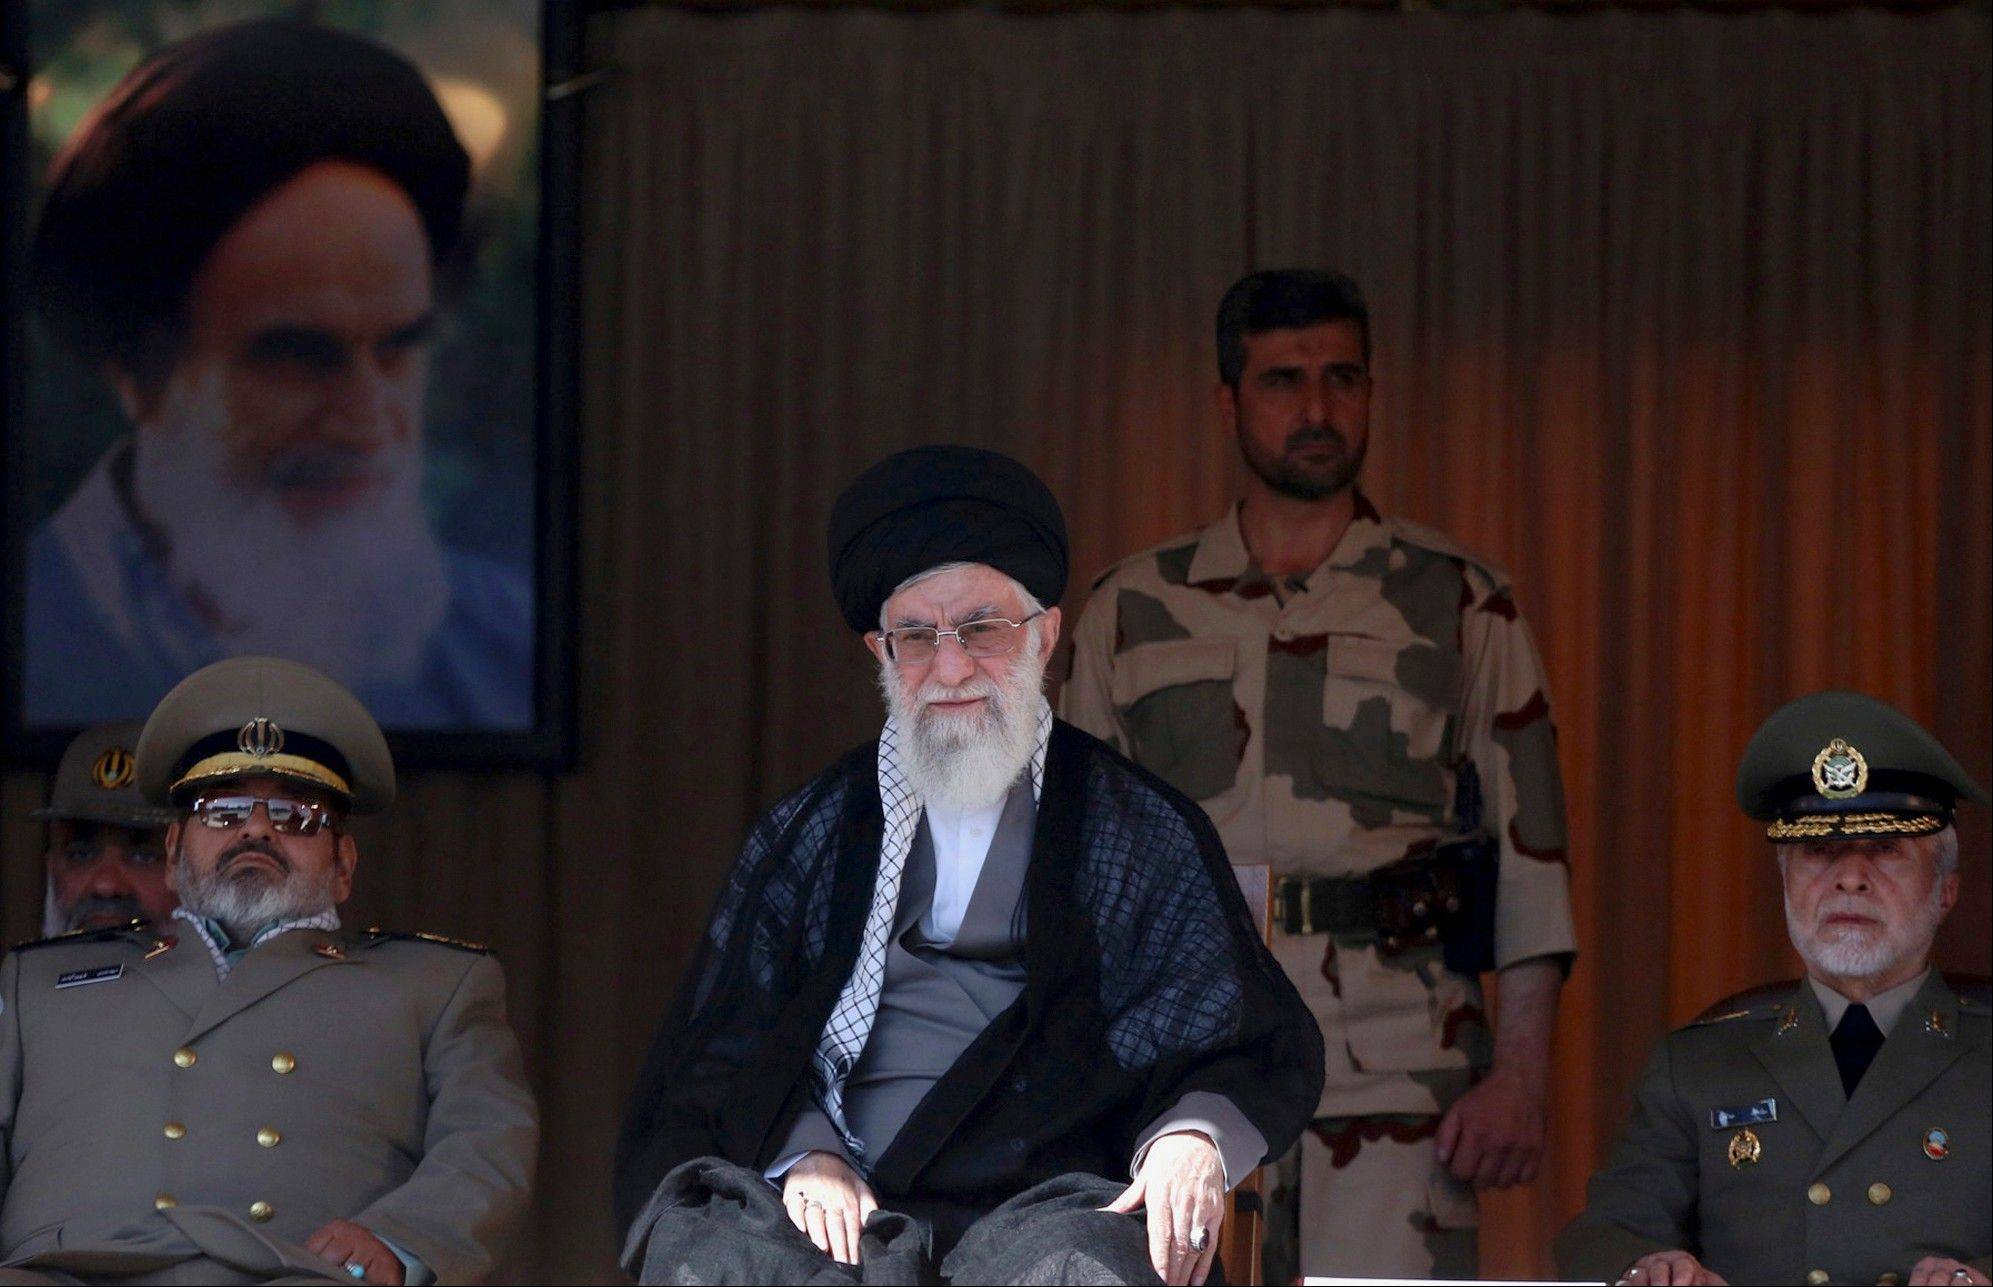 "In this picture released by an official website of the office of the Iranian supreme leader, Supreme Leader Ayatollah Ali Khamenei, center, attends a graduation ceremony of army cadets, while Chief of the General Staff of Iran's Armed Forces, Gen. Hasan Firouzabadi, left, and army commander Ataollah Salehi, right, accompany him in Tehran, Iran, Saturday, Oct. 5, 2013. Iran's top leader said some aspects of Hassan Rouhani's trip to New York last month were ""not appropriate,"" but has reiterated his crucial support for the president's policy of outreach to the West. A portrait of the late revolutionary founder Ayatollah Khomeini hangs in the background."